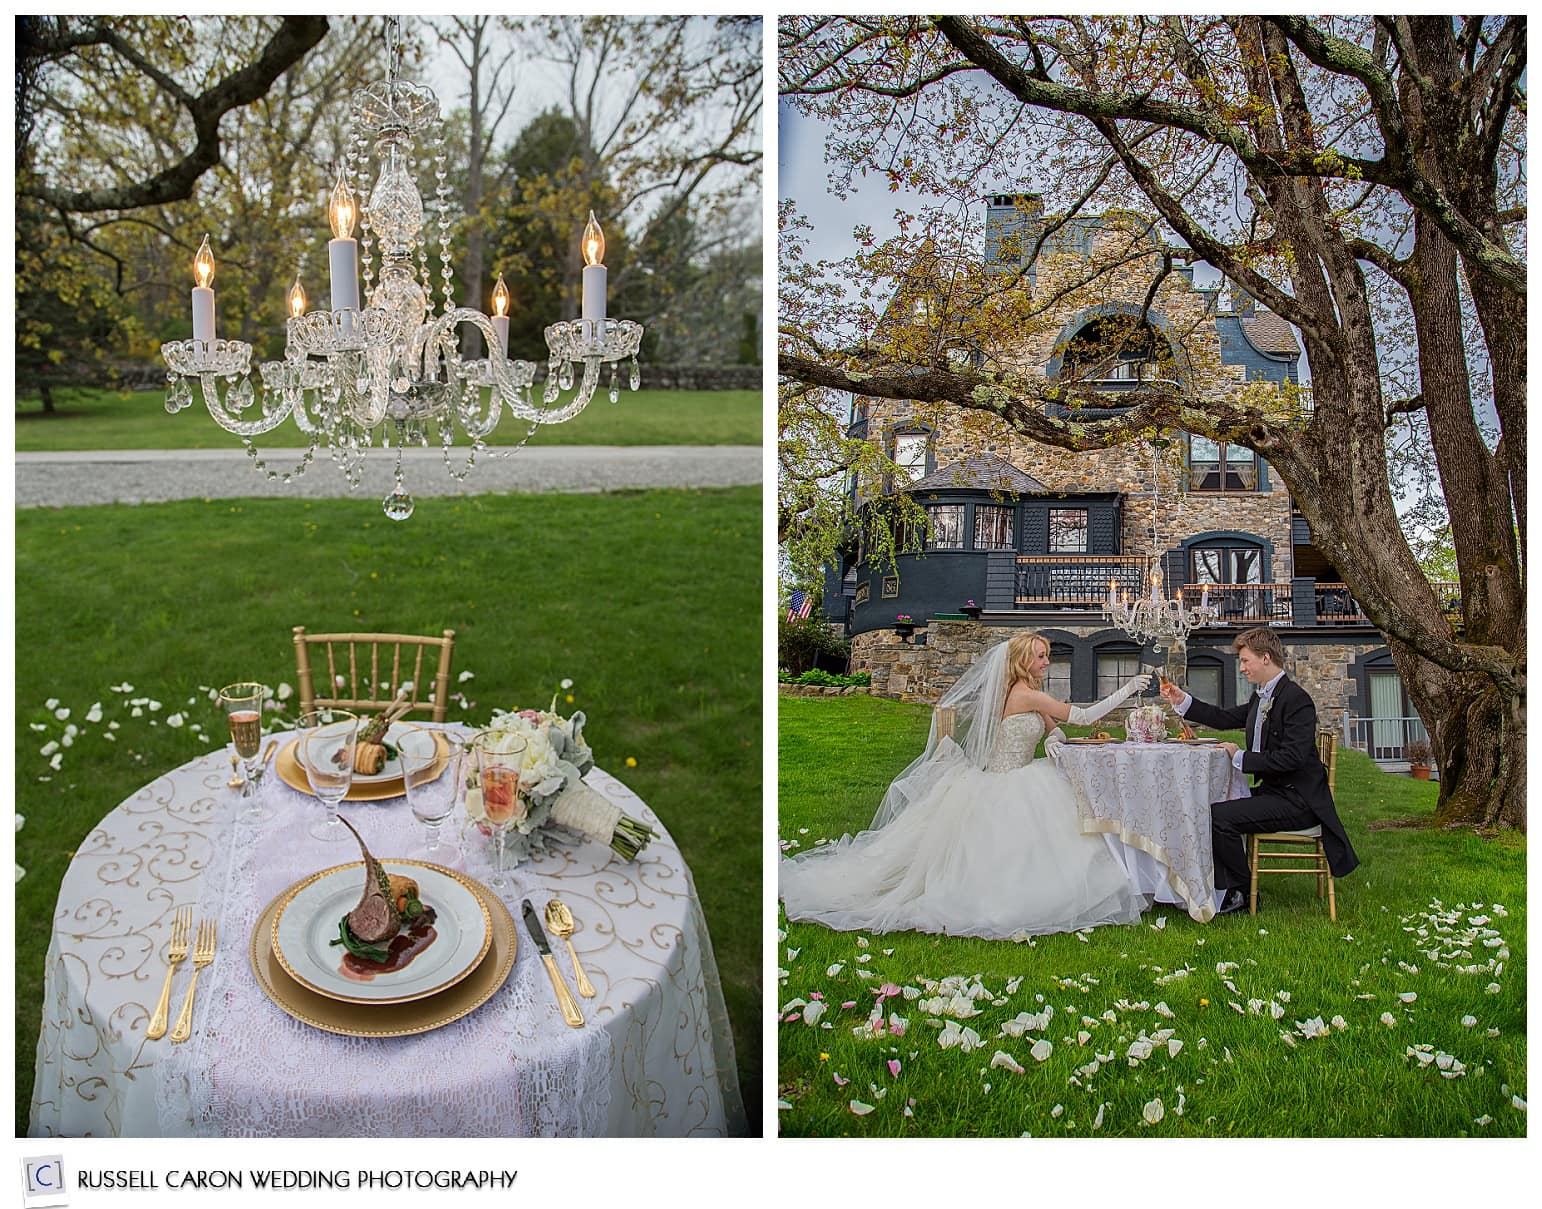 Sweetheart table ideas, bride and groom during reception